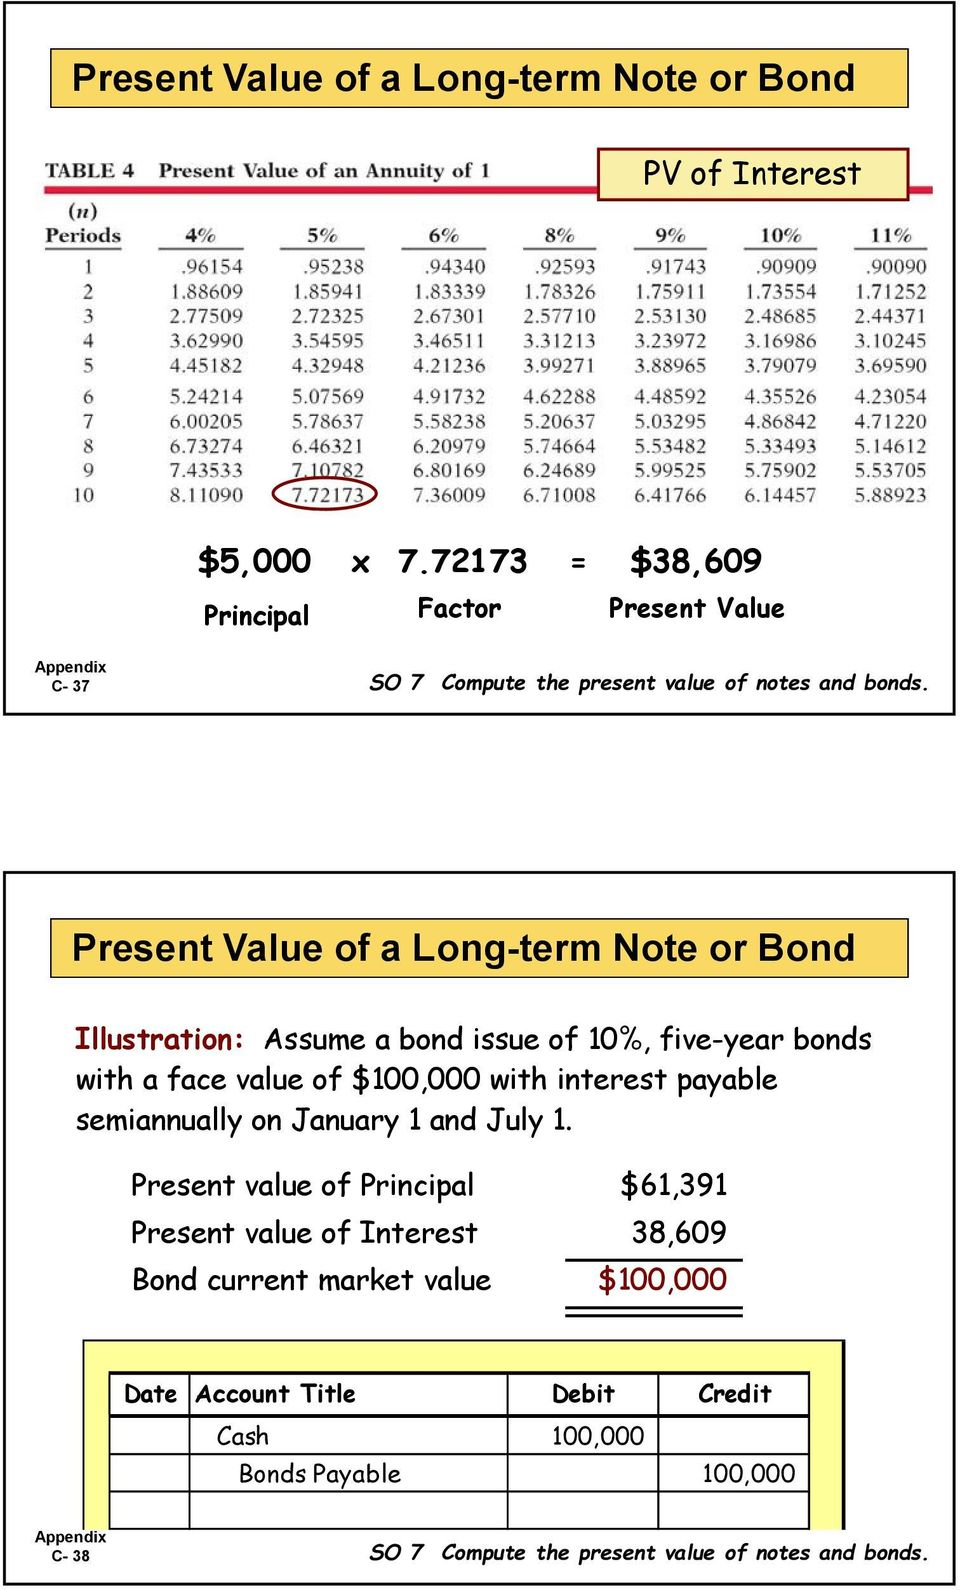 Present Value of a Long-term Note or Bond Illustration: Assume a bond issue of 10%, five-year bonds with a face value of $100,000 with interest